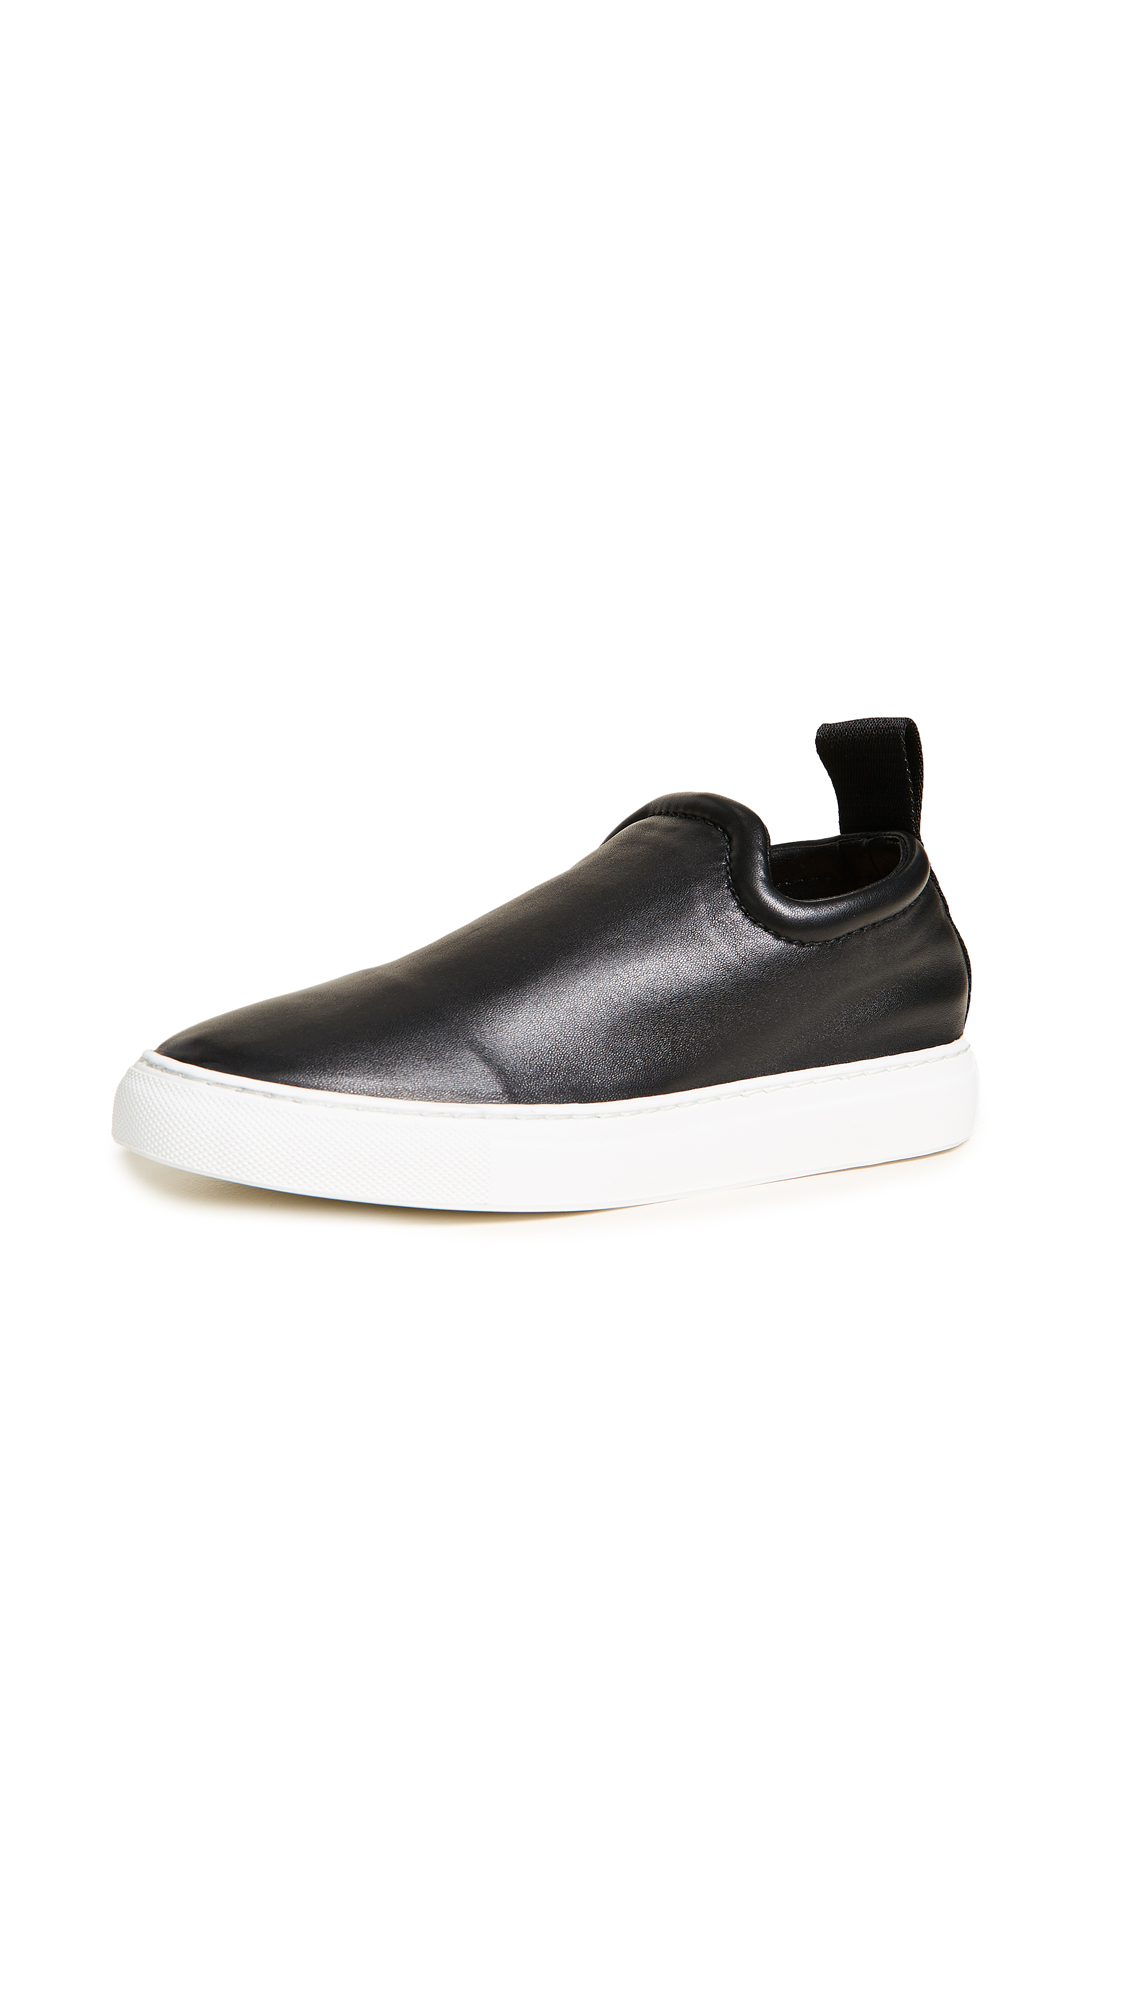 Joseph Dogtown Sneakers - Black